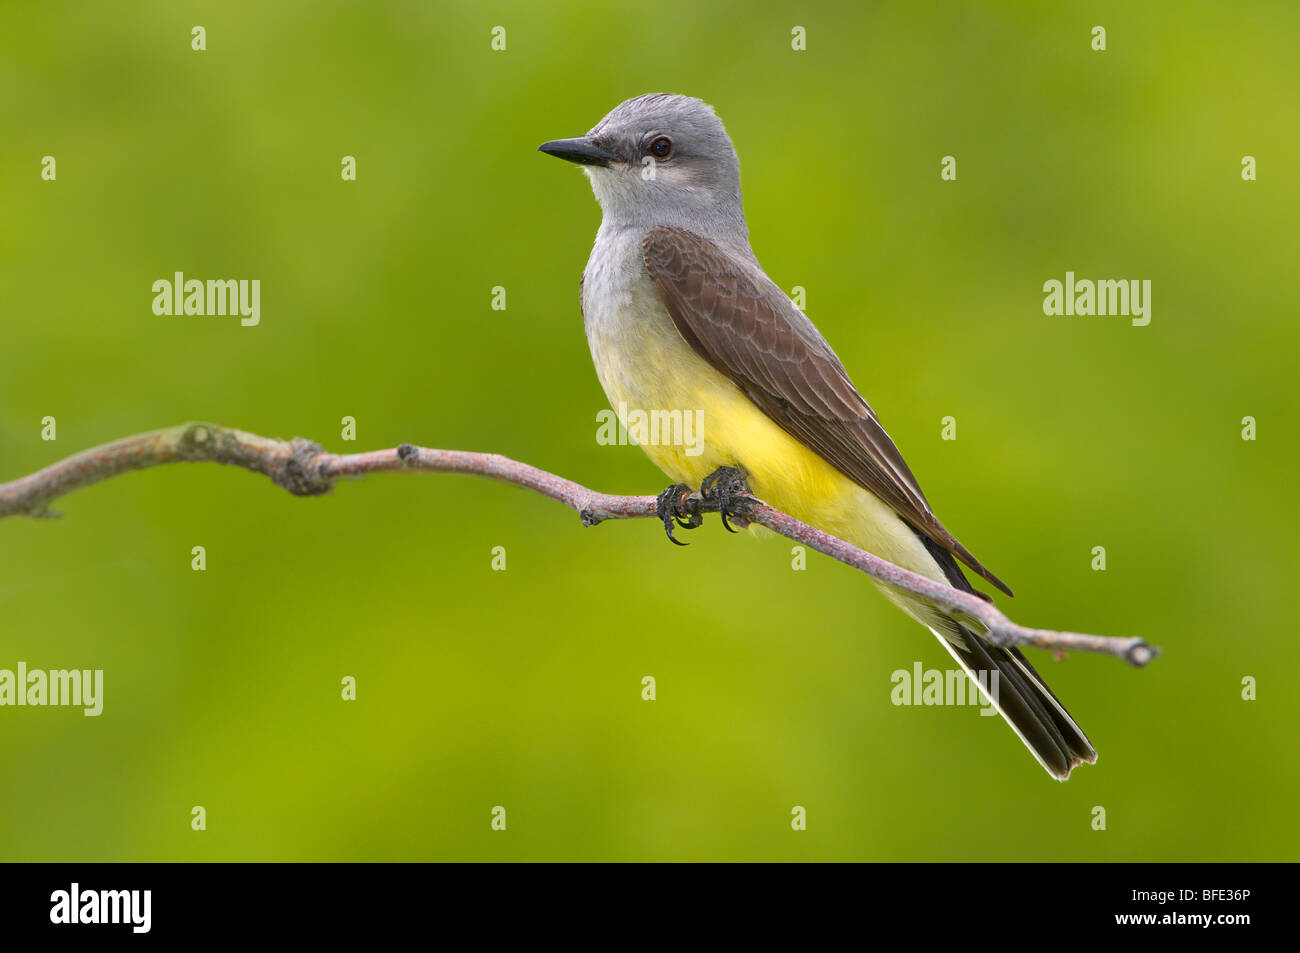 Western kingbird (Tyrannus verticalis) on perch at Potholes State Park, Washington, USA - Stock Image